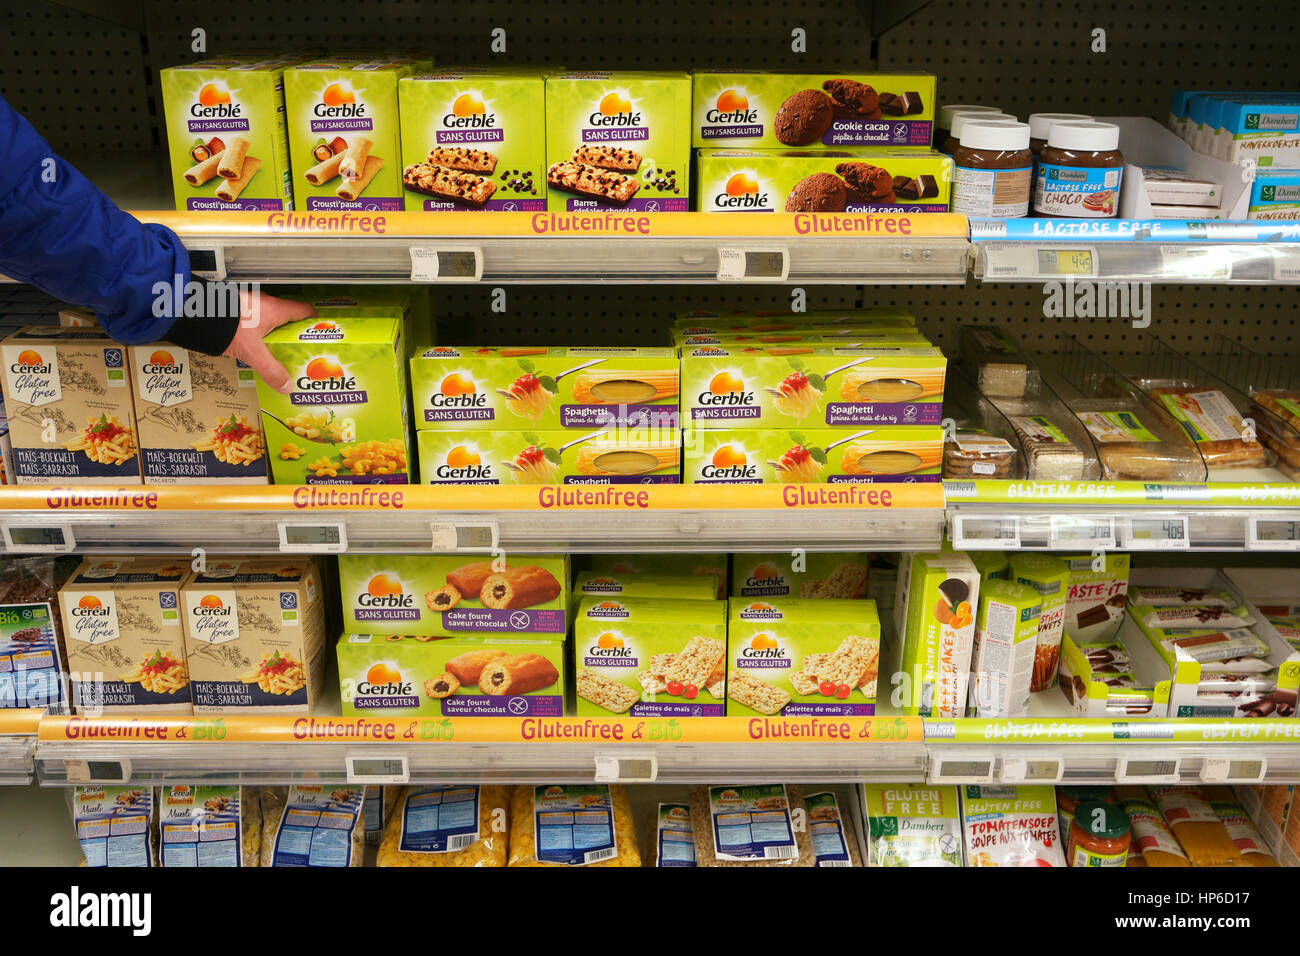 Shelves with various glutenfree products in a Supermarket. - Stock Image